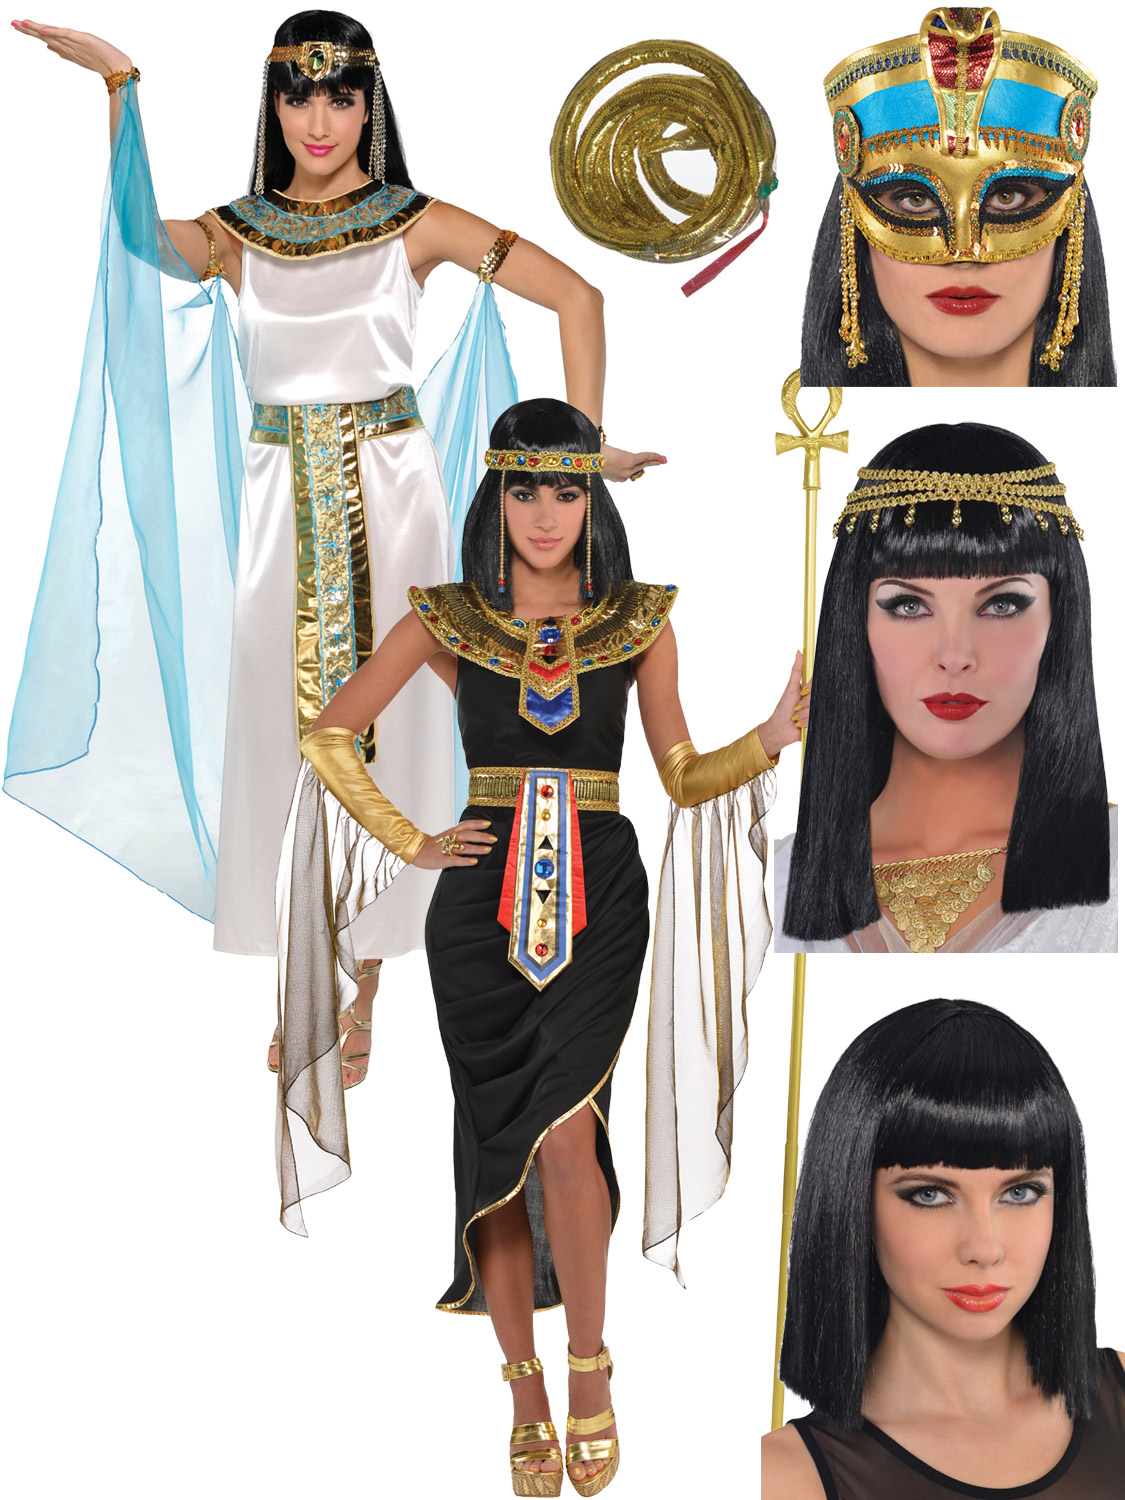 Transform yourself into Queen Cleopatra with either of these fantastic quality costumes - great for historical themed fancy dress events or a gods and ...  sc 1 st  eBay & Adult Cleopatra Costume + Accessories Egyptian Queen Goddess Fancy ...